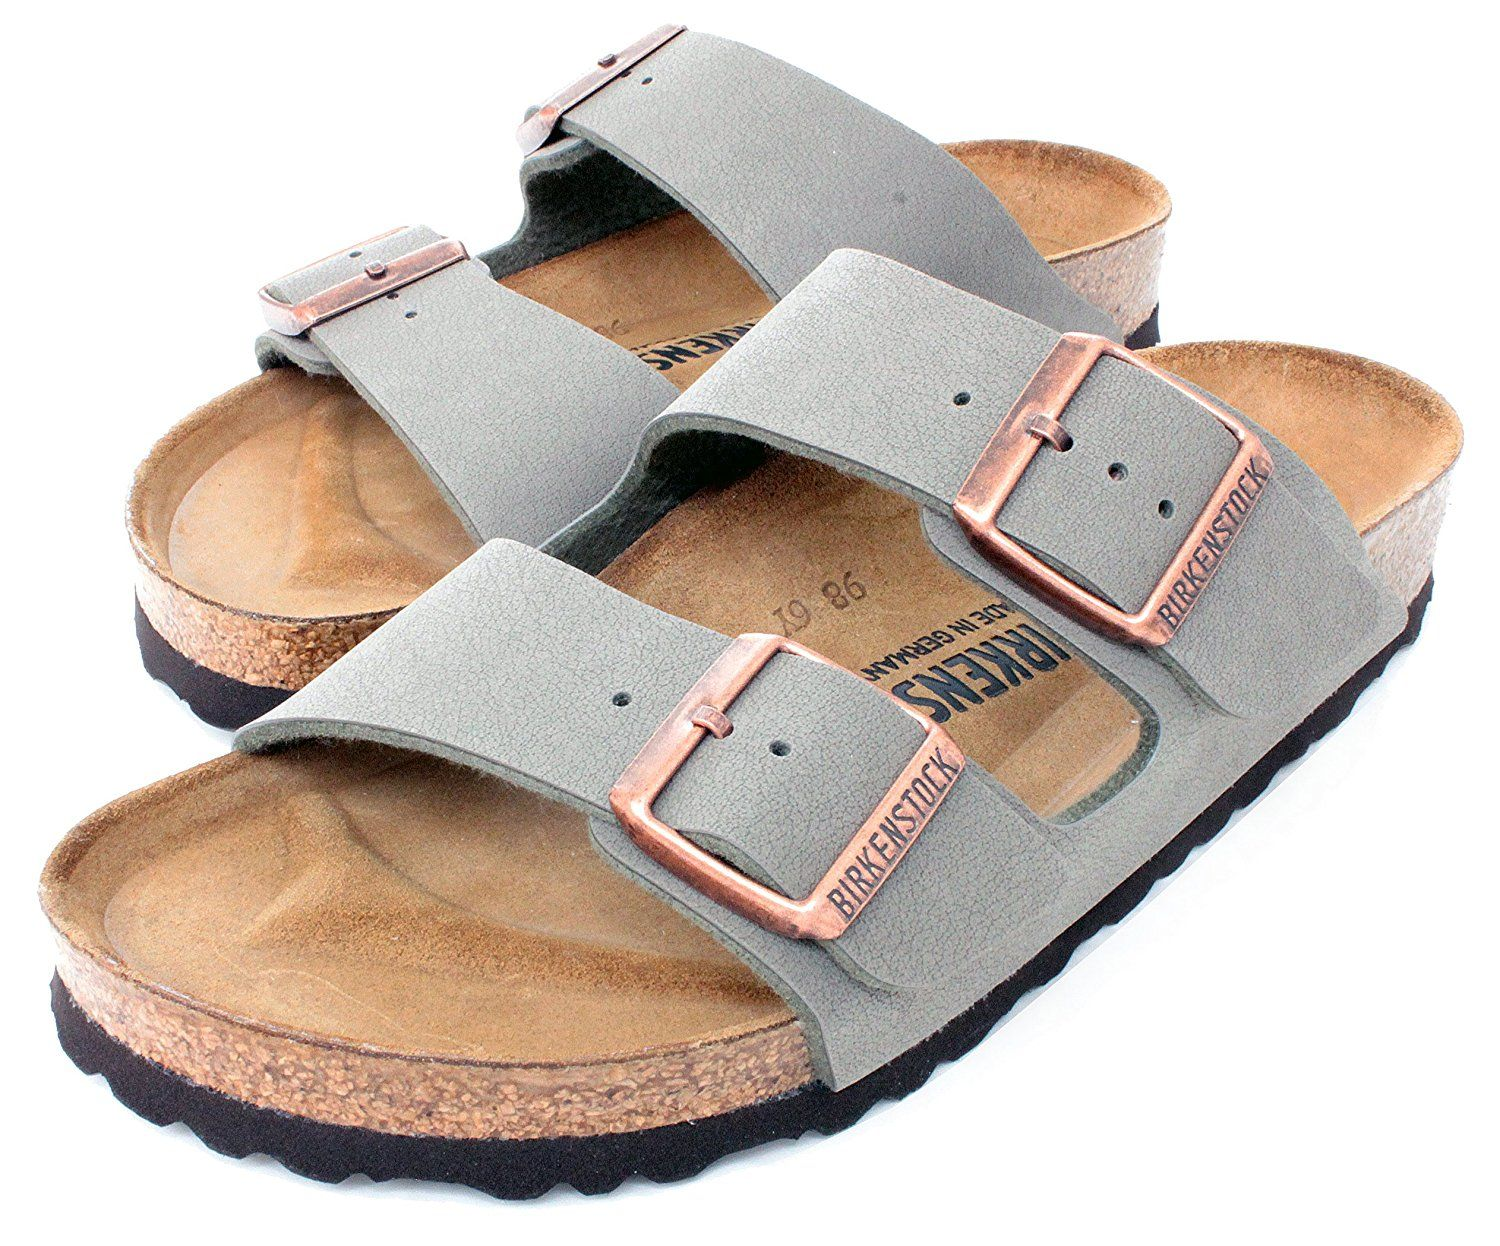 89465ae4d8bb Birkenstock Arizona 2-Strap Women s Sandals in Stone Birko-Flor (39 N EU -  Narrow) -- Insider s special review you can t miss. Read more   Outdoor  sandals